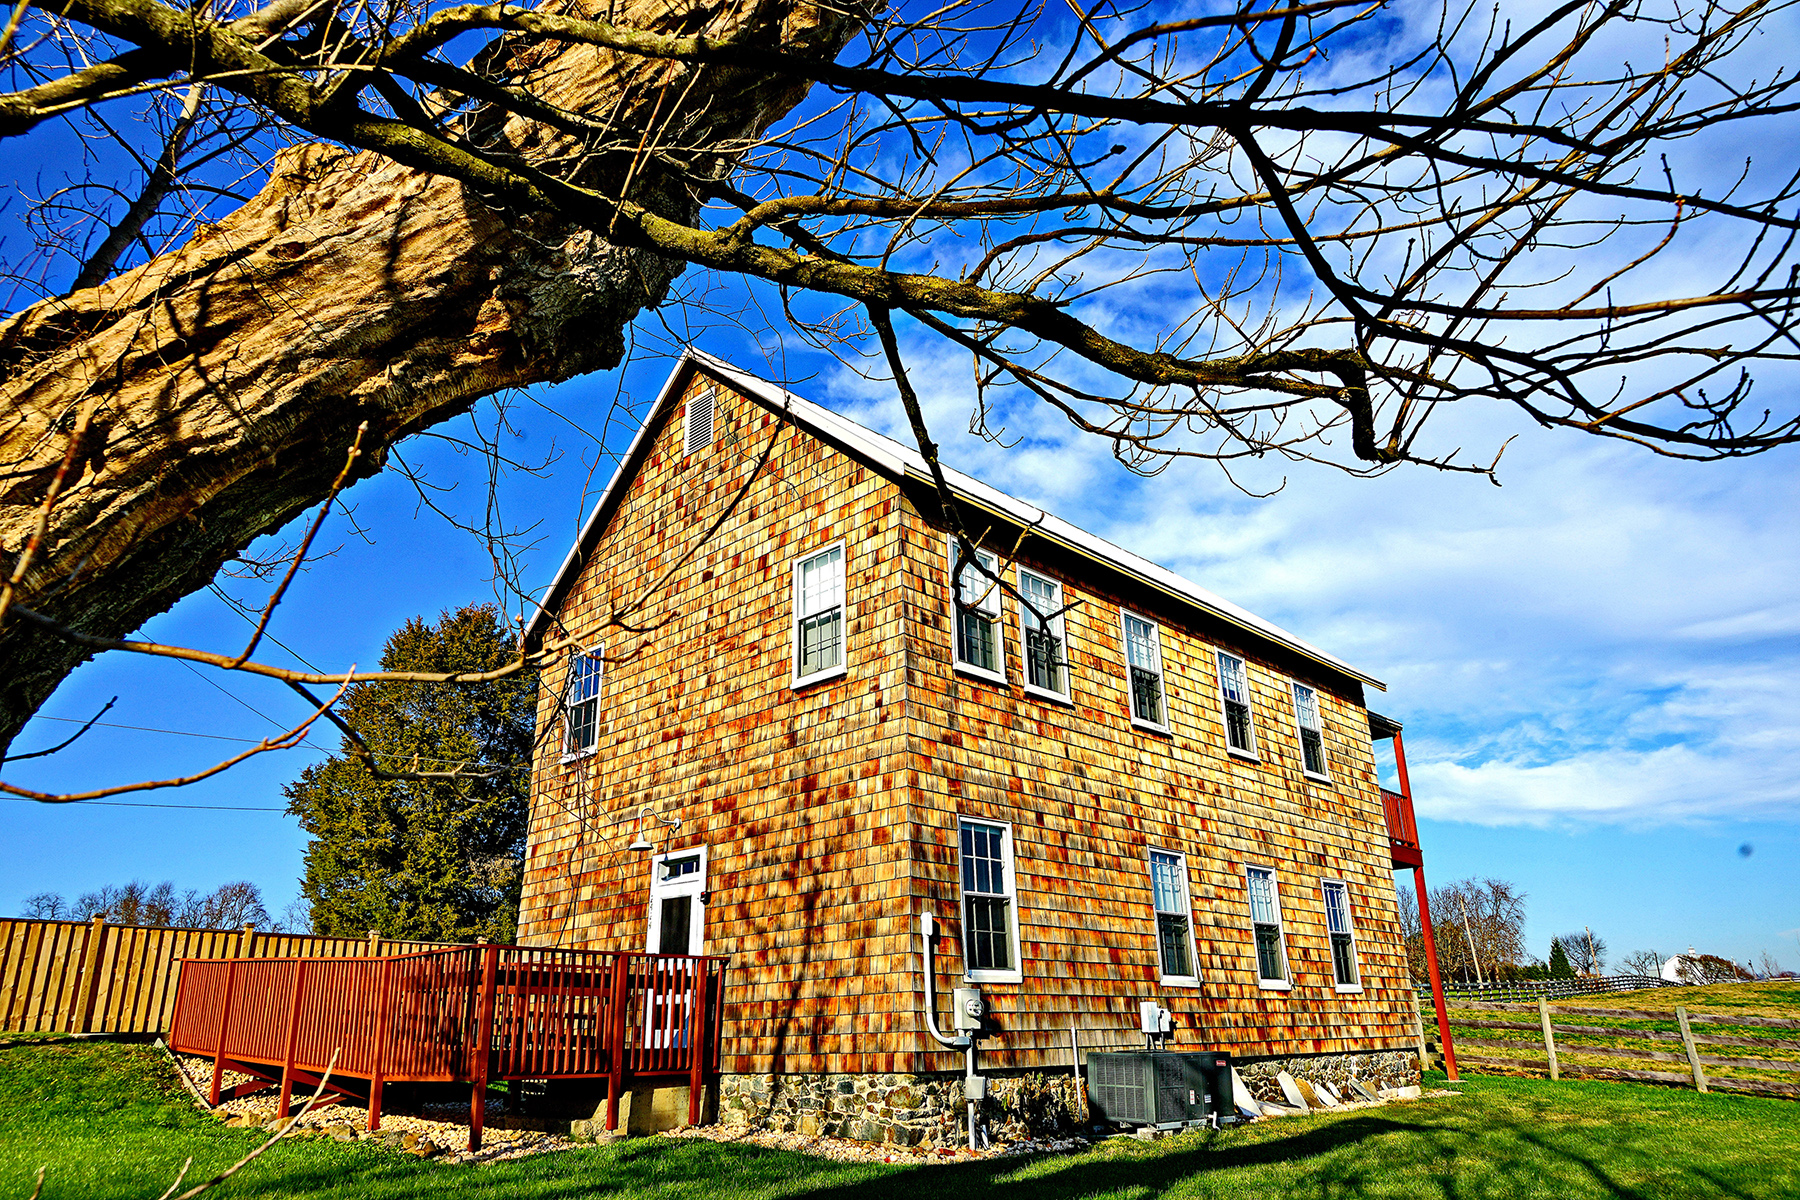 Hosanna School Museum - first Freedmen's Bureau School in Harford County